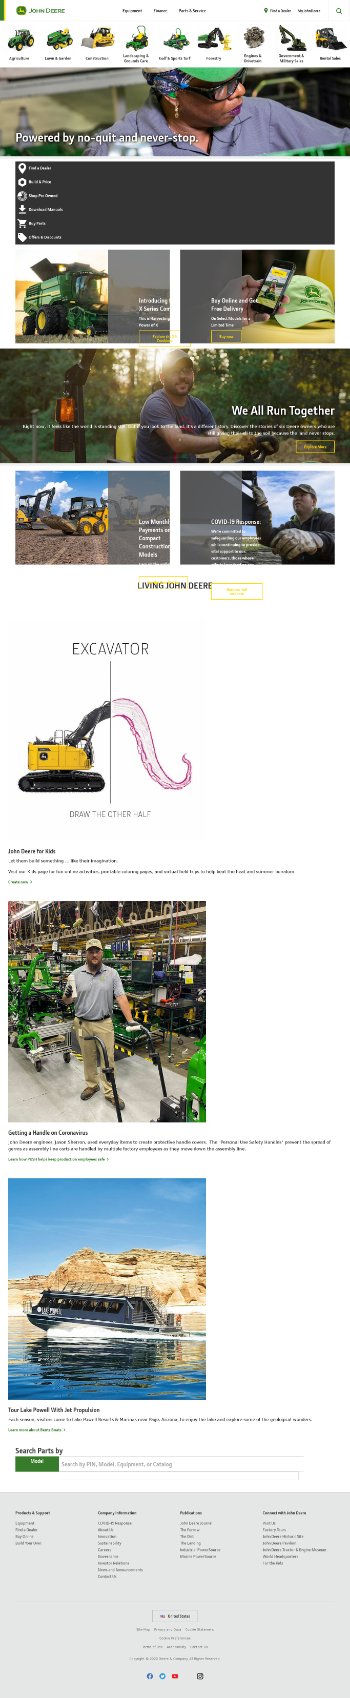 Deere & Company Website Screenshot